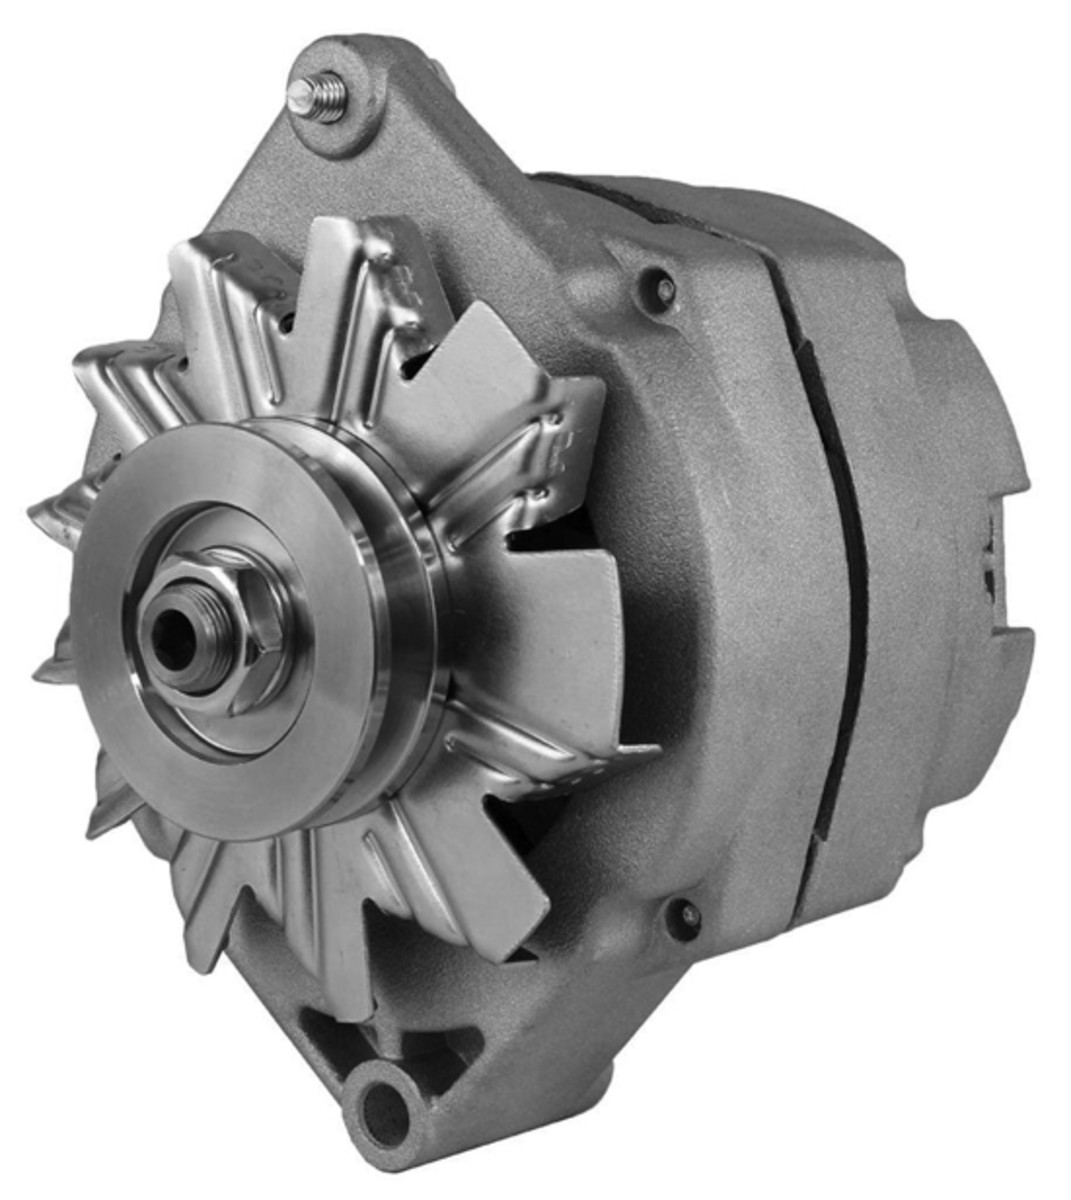 You will need to replace your alternator with a Delco single wire alternator. These are readily available online or at your local auto electric store. For most historic military vehicles (HMVs), a 60-amp is more than adequate.